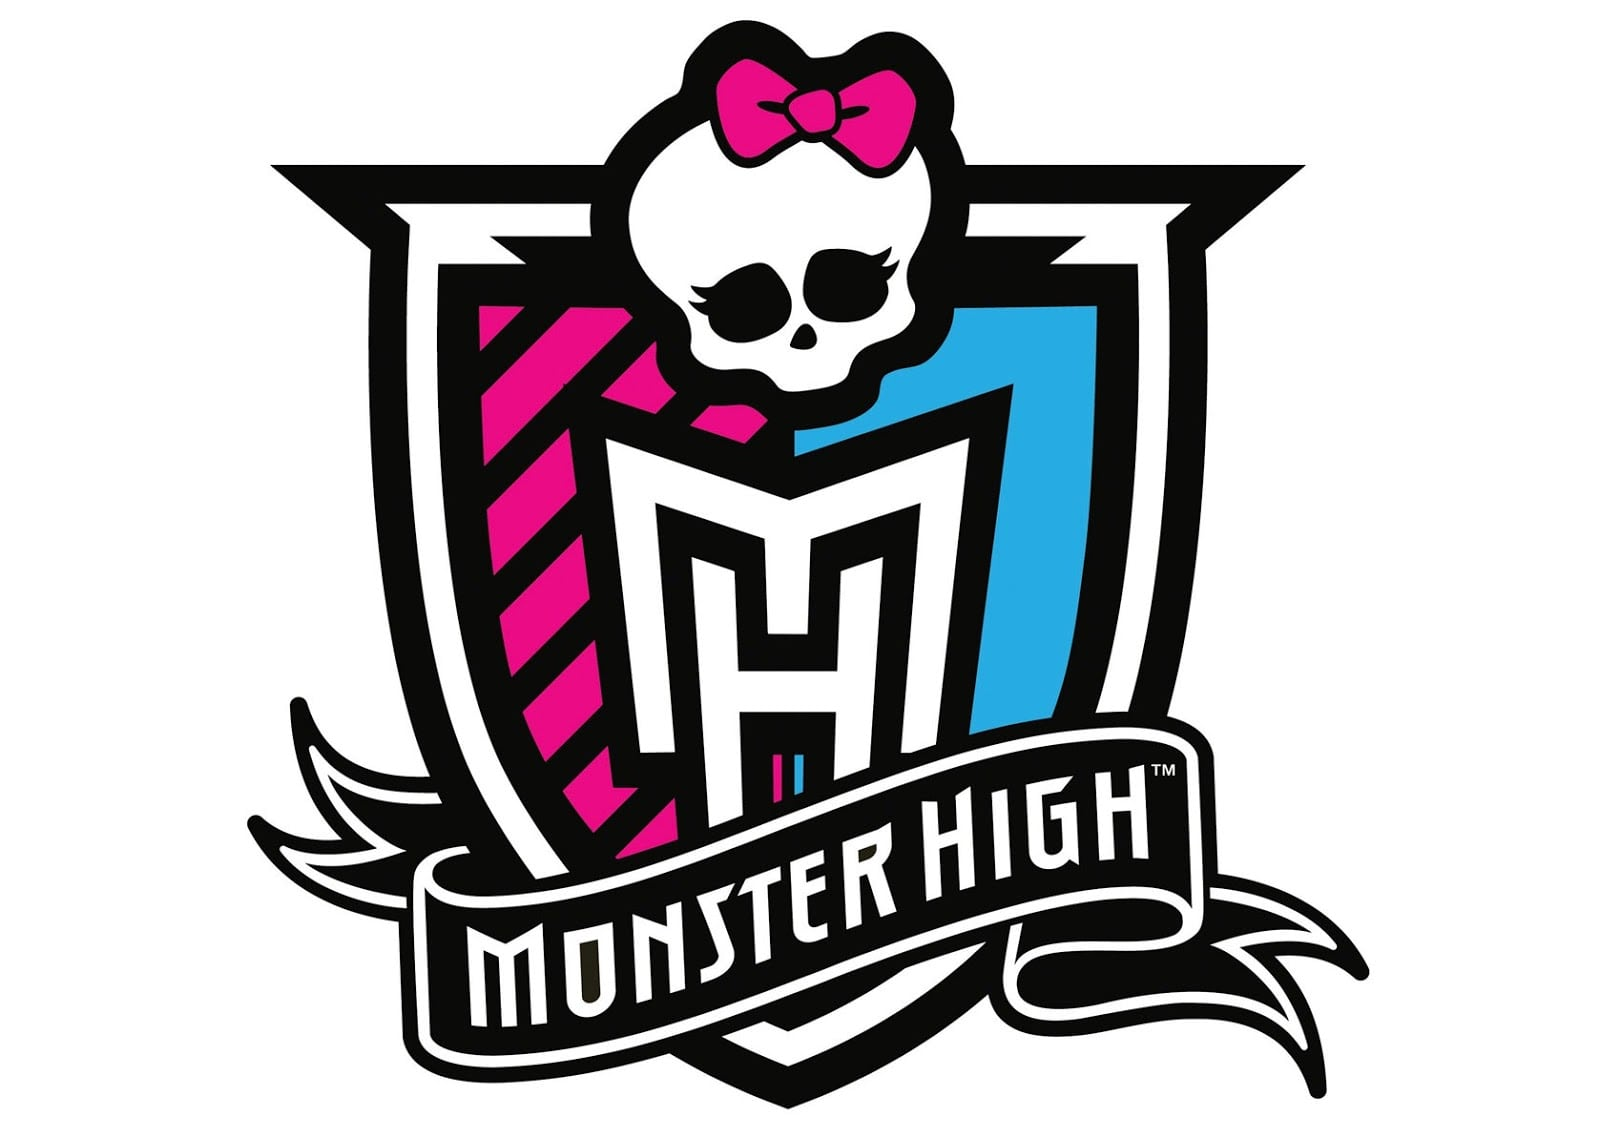 Todos Amam Monster High